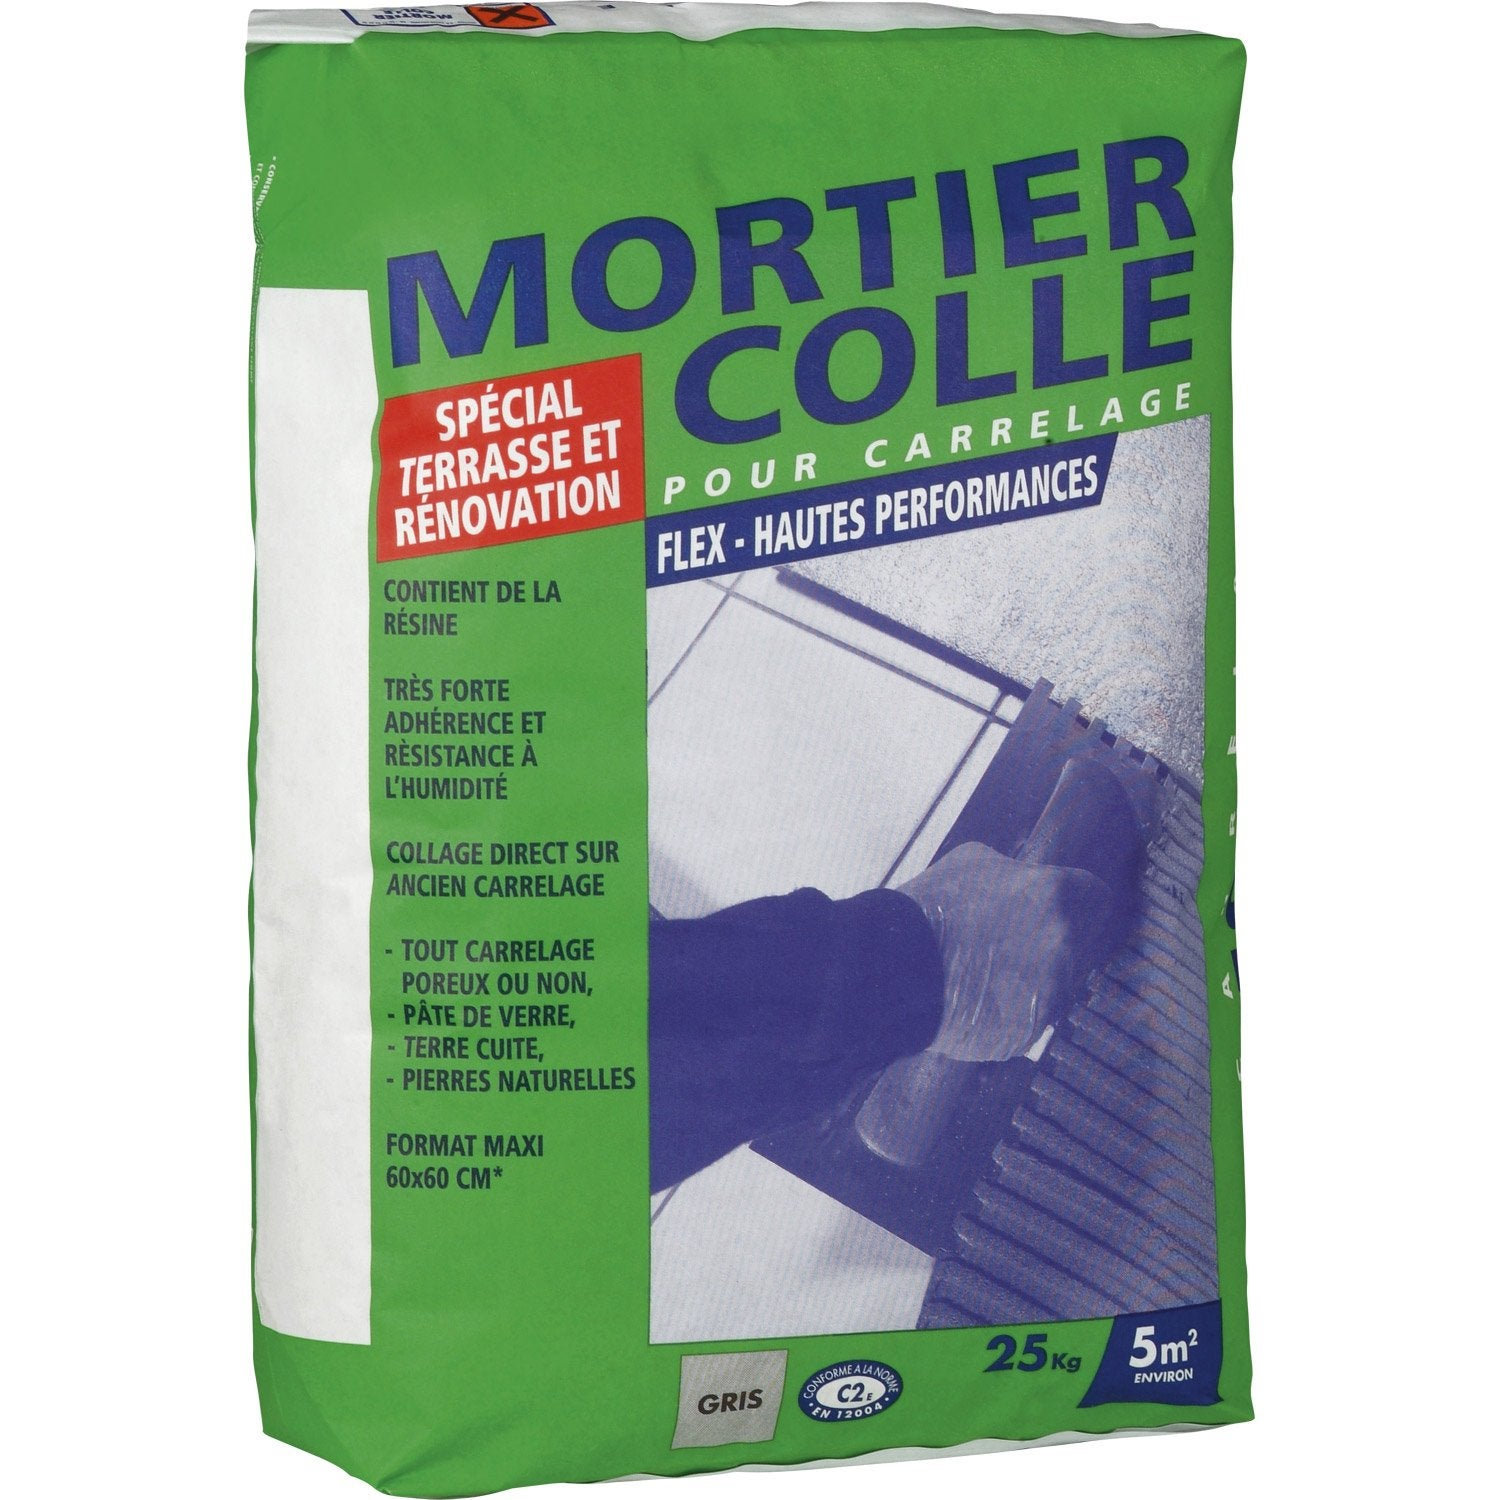 Mortier colle flex gris 25 kg leroy merlin - Ciment colle leroy merlin ...